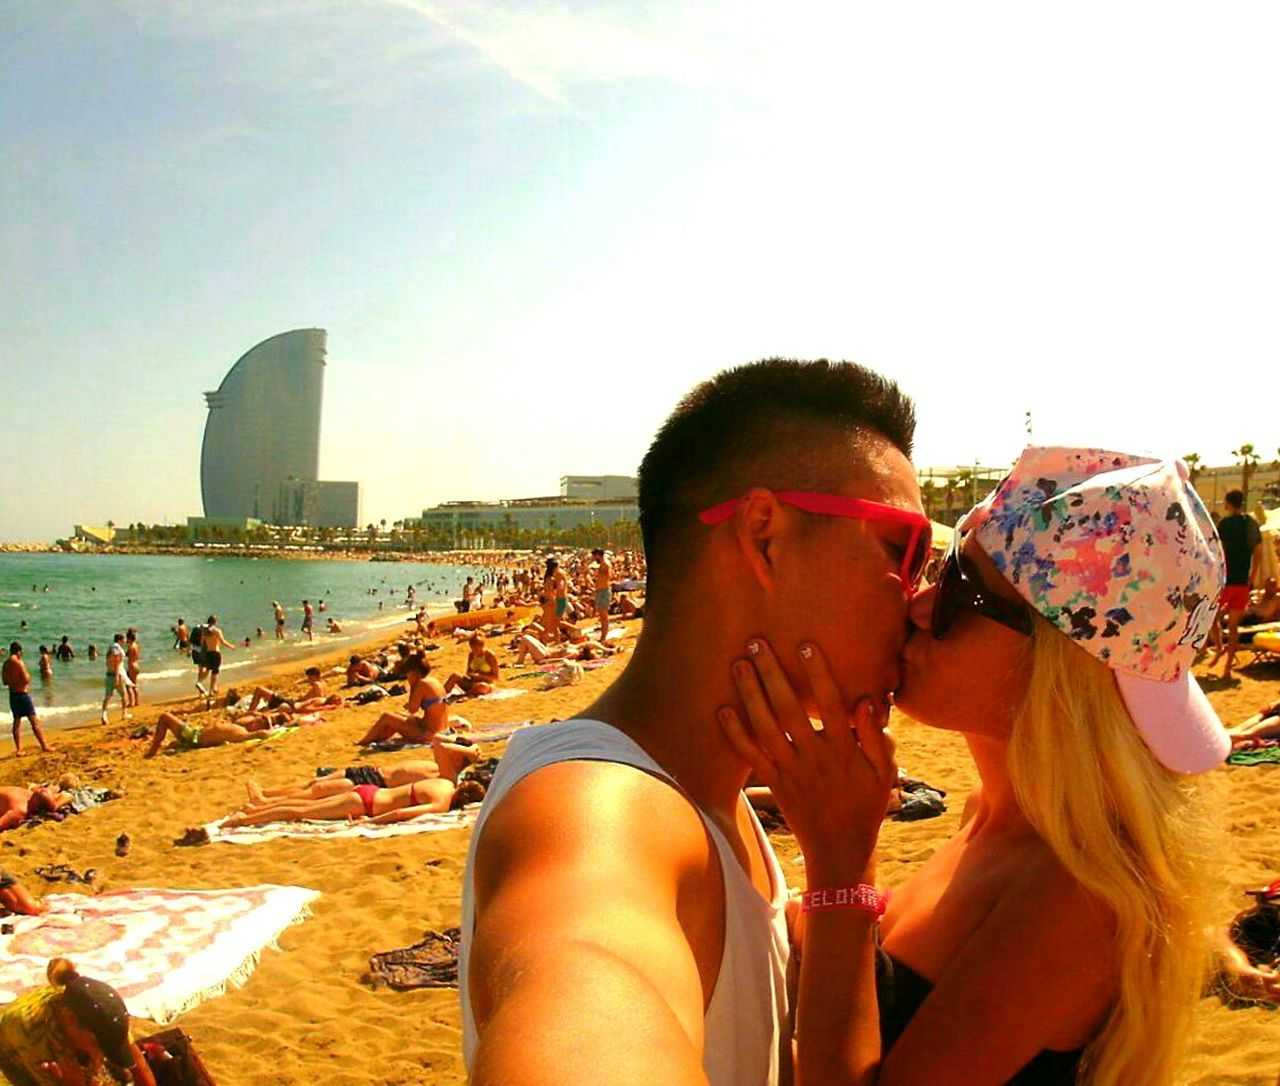 Beachphotography Lovephotography  Forevertogether Kiss Iloveyou Hello World That's Me HelloSea! SPAIN Barcelona Barceloneta Summer Eyeemcollection Eye4photography  Beautifulview Beachlife Calming Views Two Is Better Than One Relaxing Sea Sea And Sky Beachview People And Places